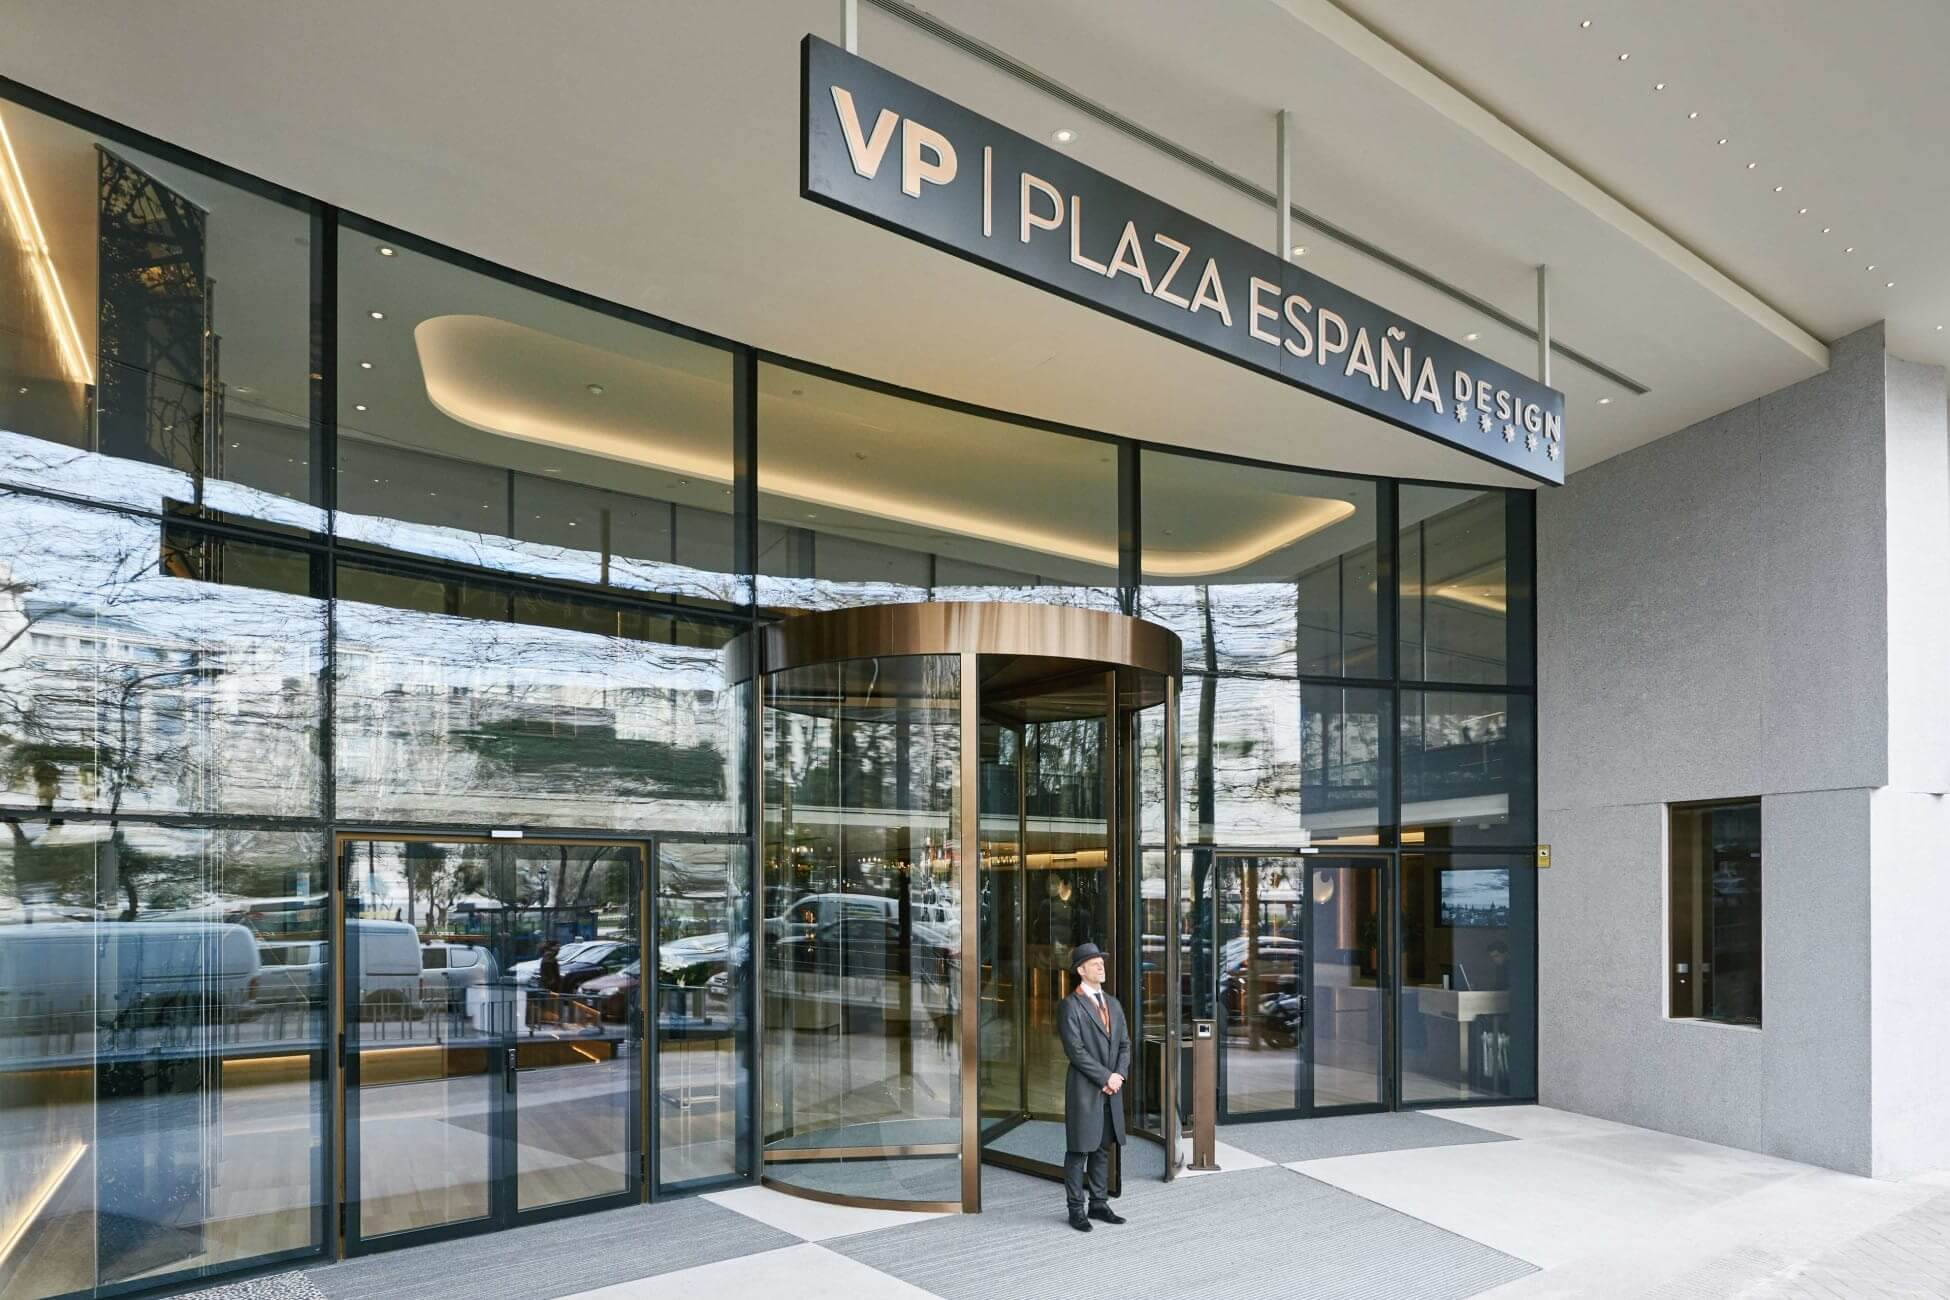 VP Plaza España becomes official Davis Cup sponsor